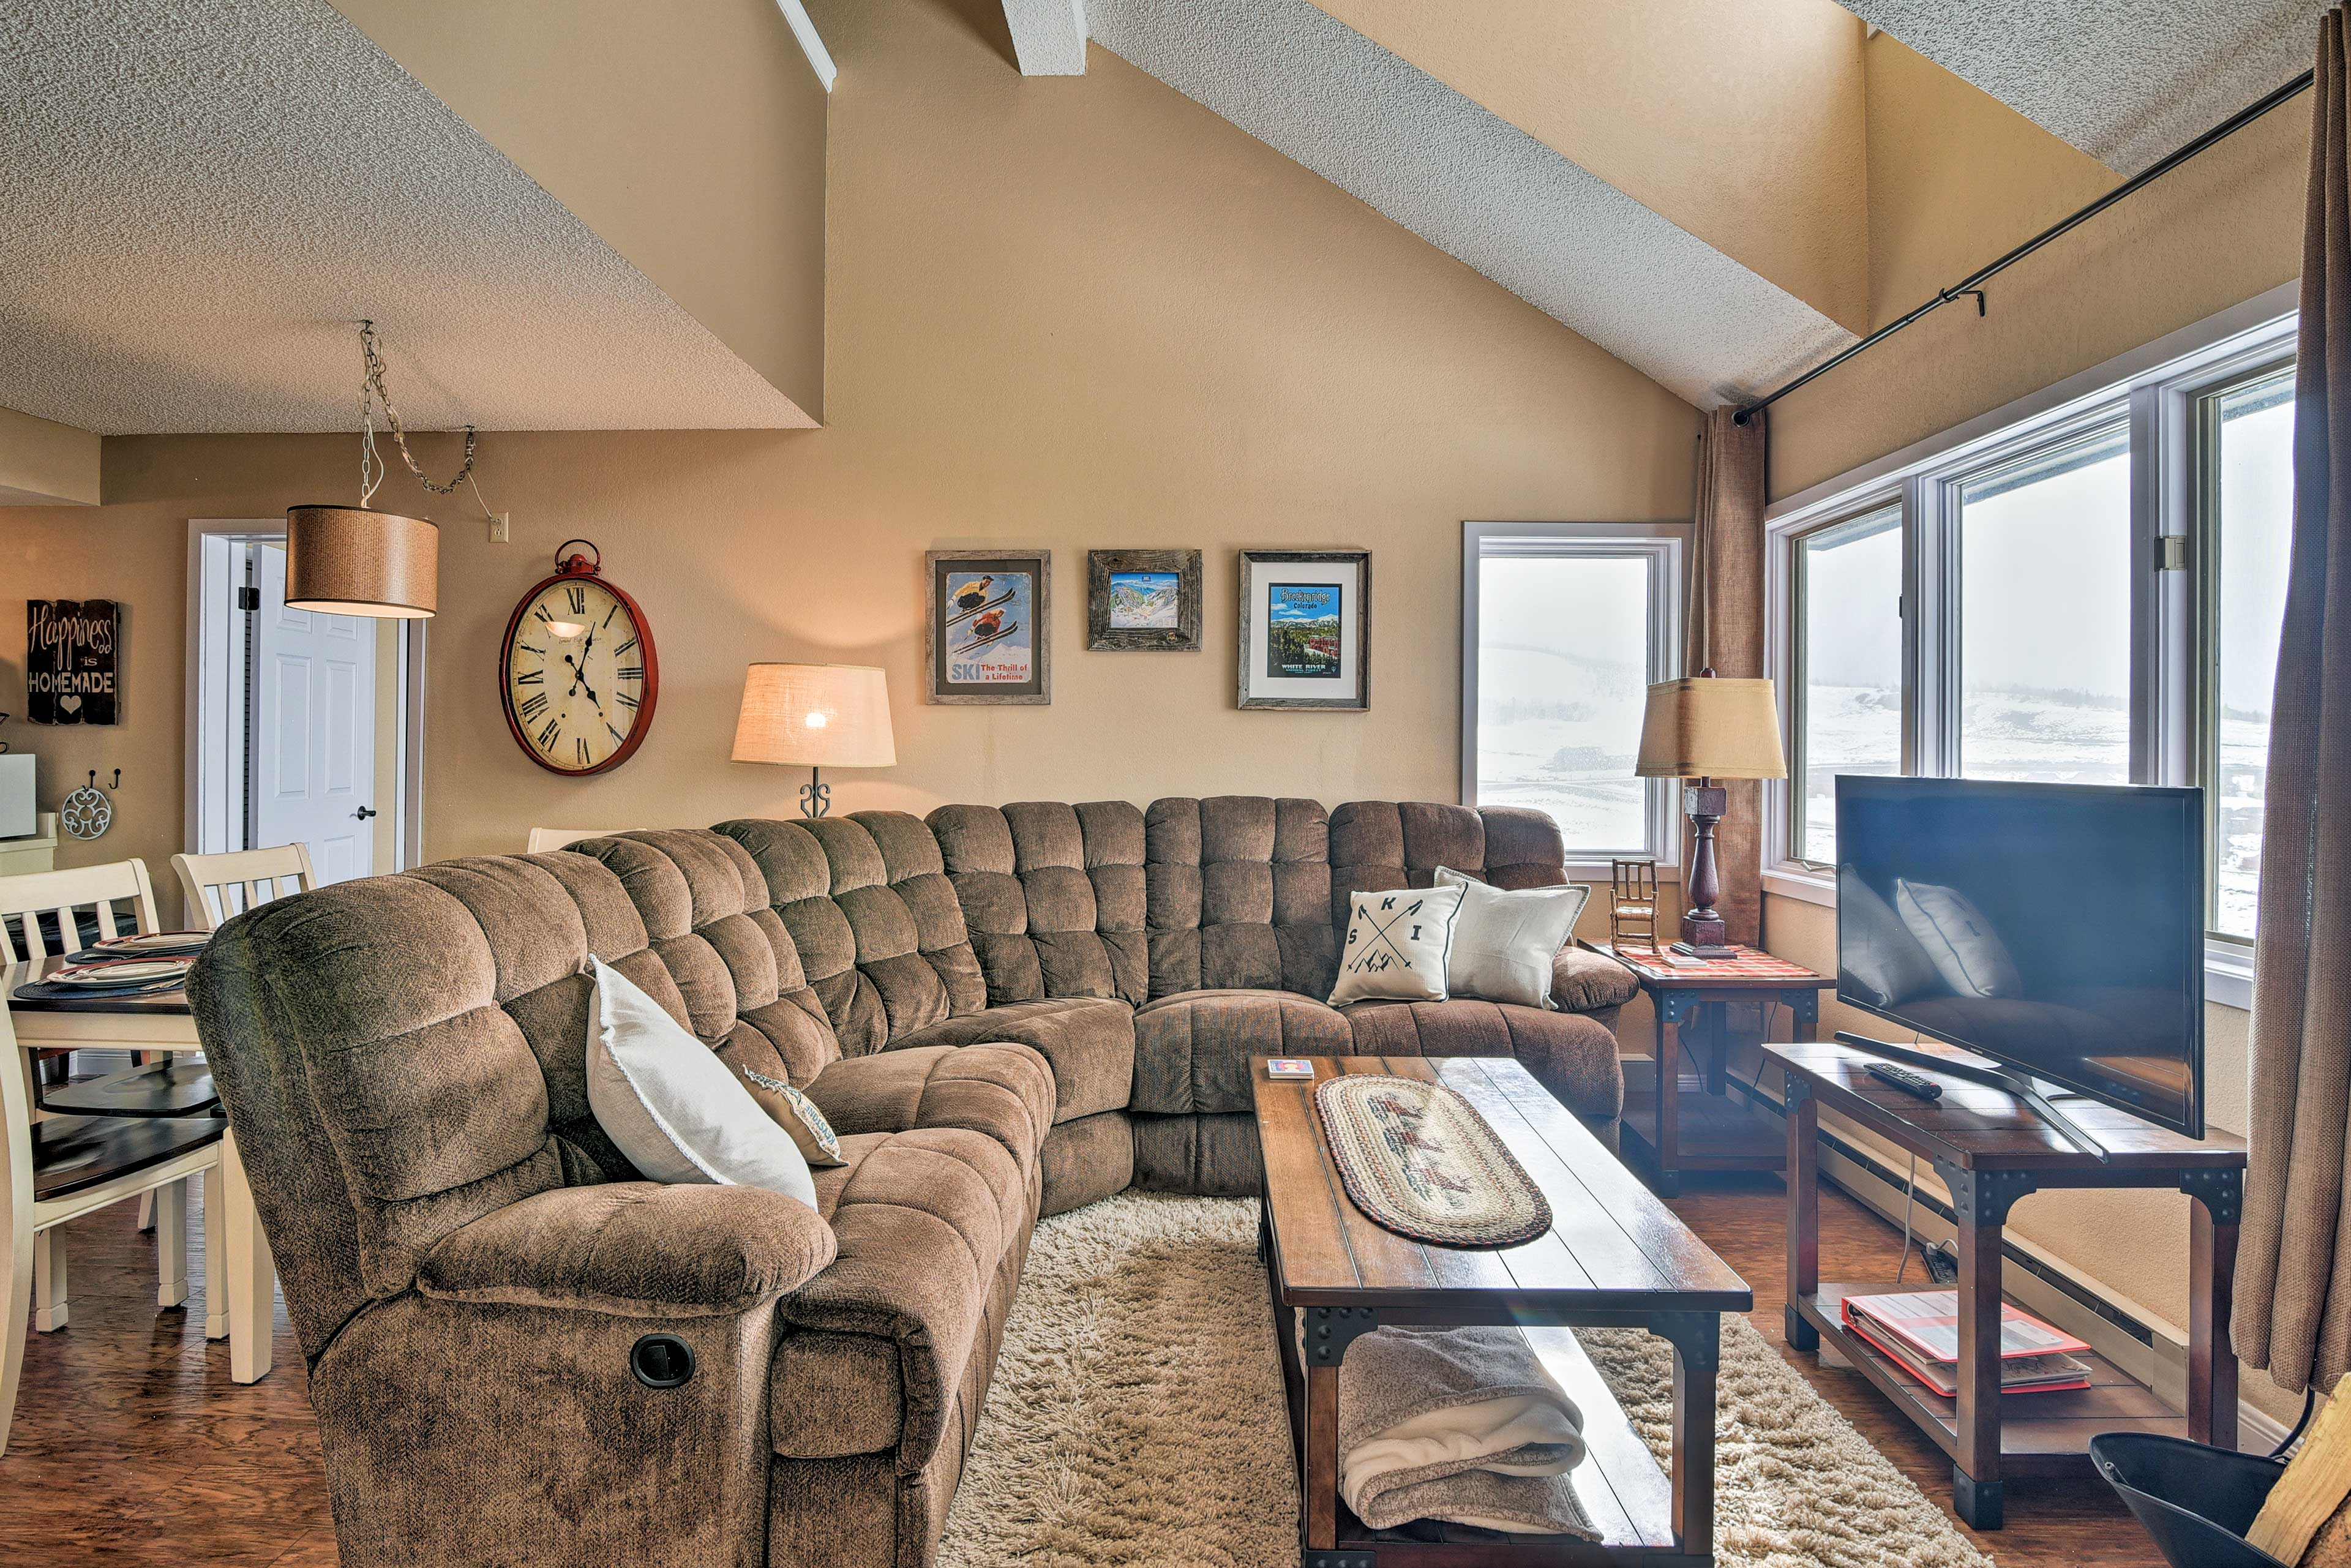 Make your next trip to Granby the best one yet with this vacation rental condo!